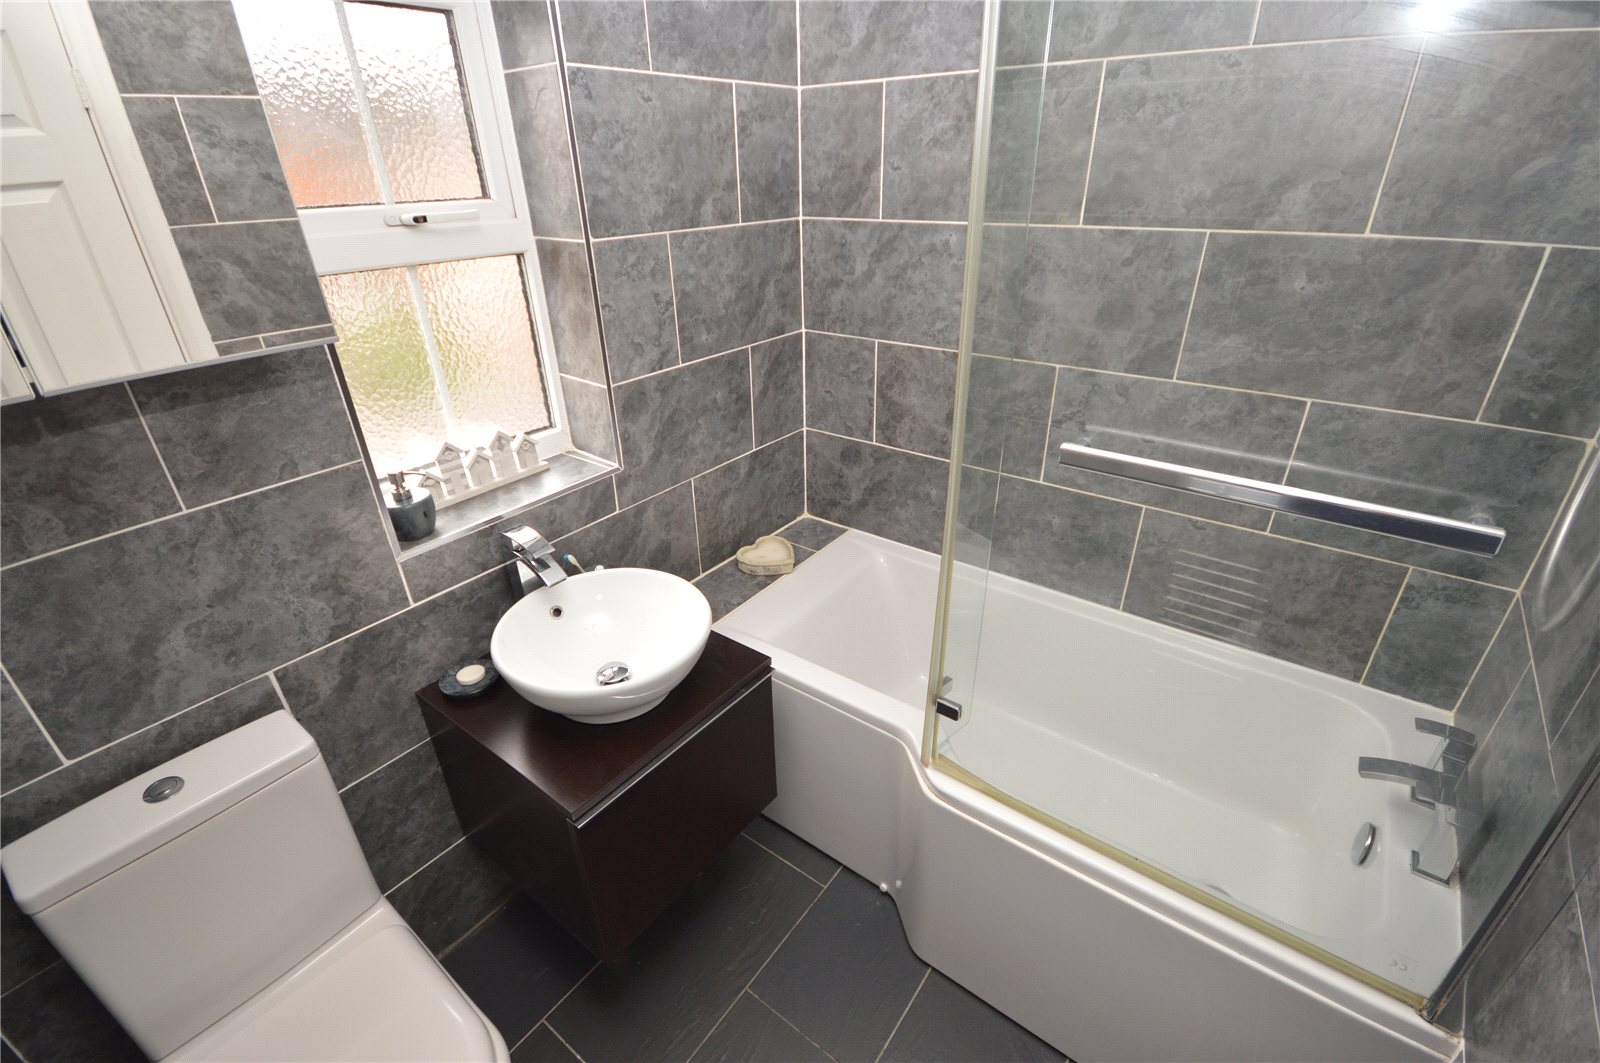 property for sale in Yeadon, interior modern bathroom